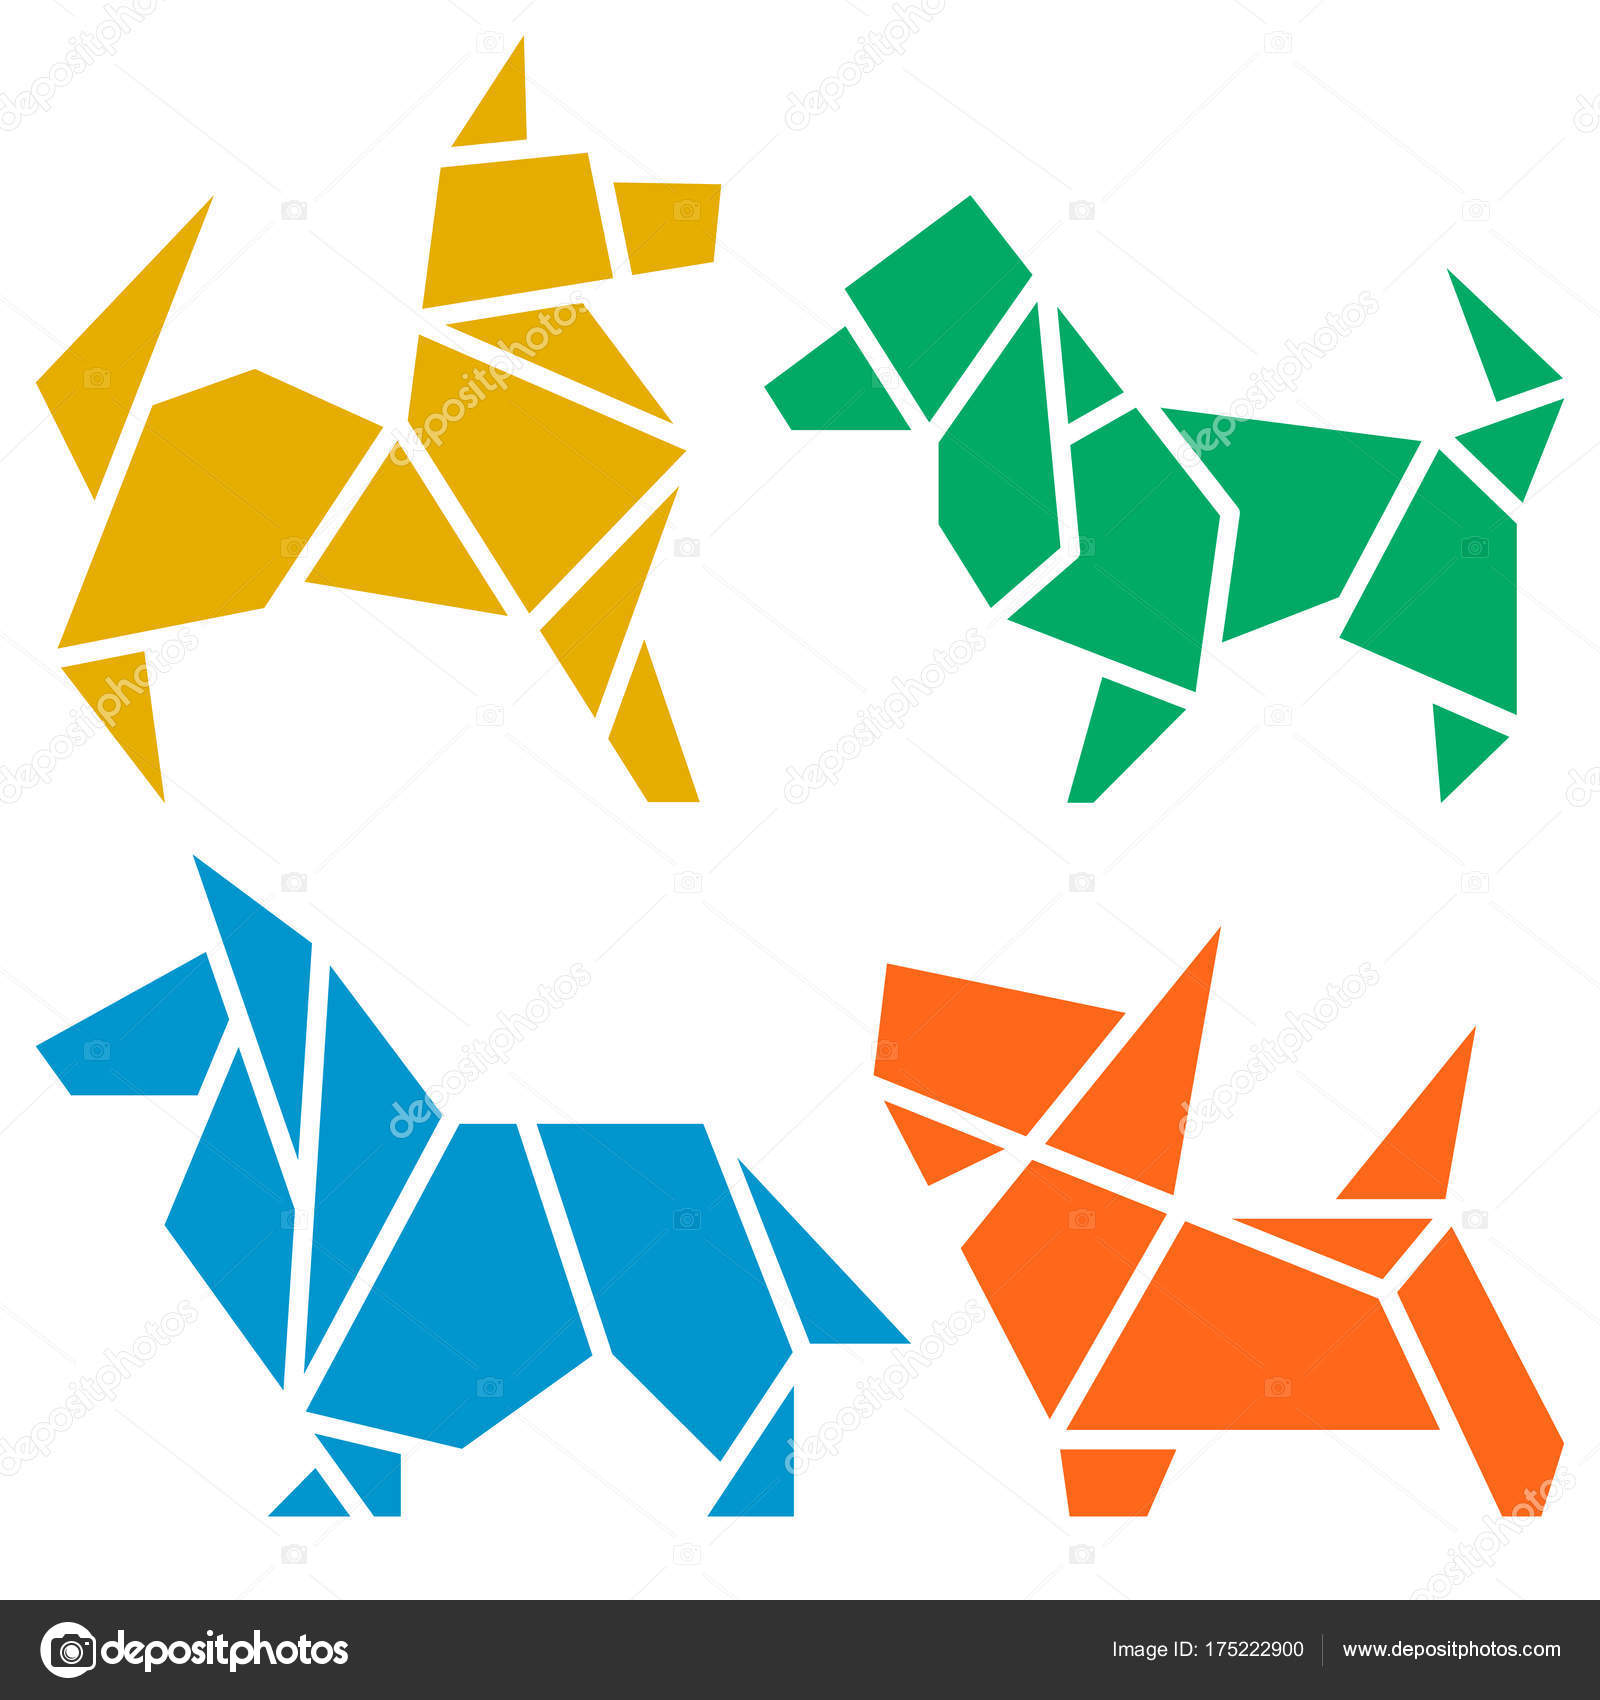 Vector origami dogs icon set abstract low poly pet dog stock vector origami dogs icon set abstract low poly pet dog breed sign silhouette isolated on white freehand drawn paper folding art emblem jeuxipadfo Gallery